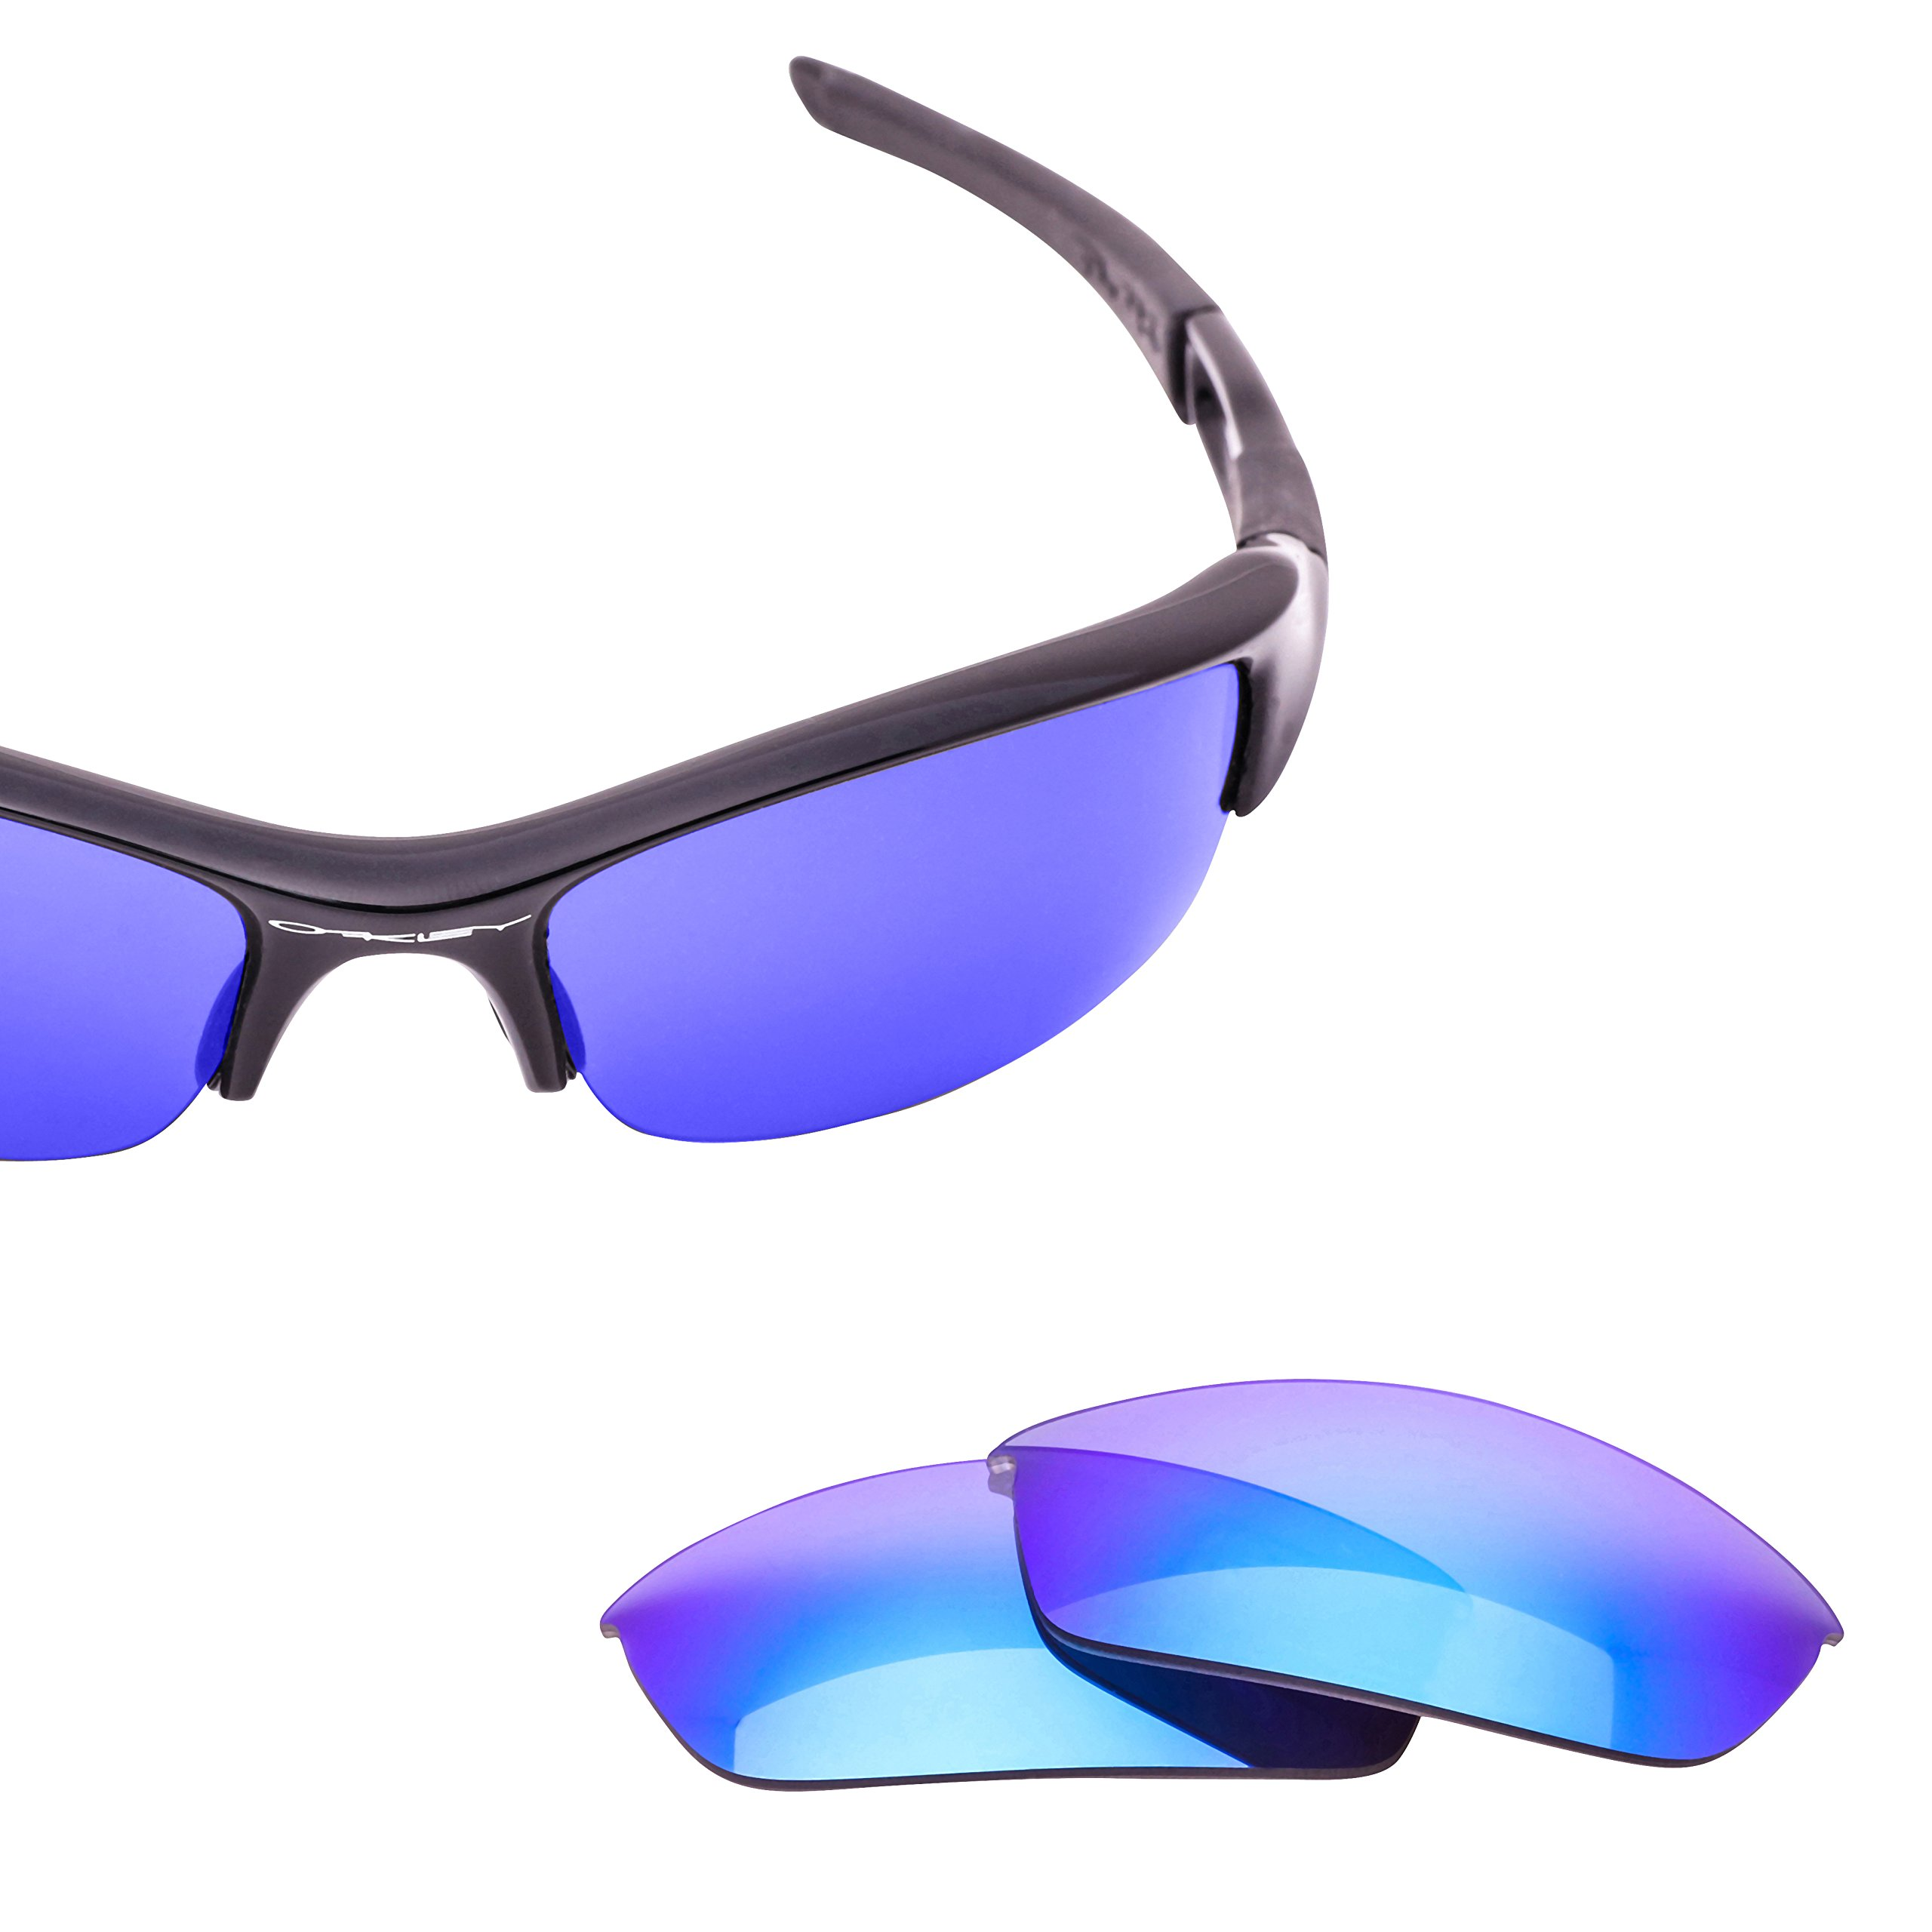 LenzFlip Lenses for Oakley FLAK JACKET Sunglass Frame - Gray Polarized with Blue Mirror Lenses by LenzFlip